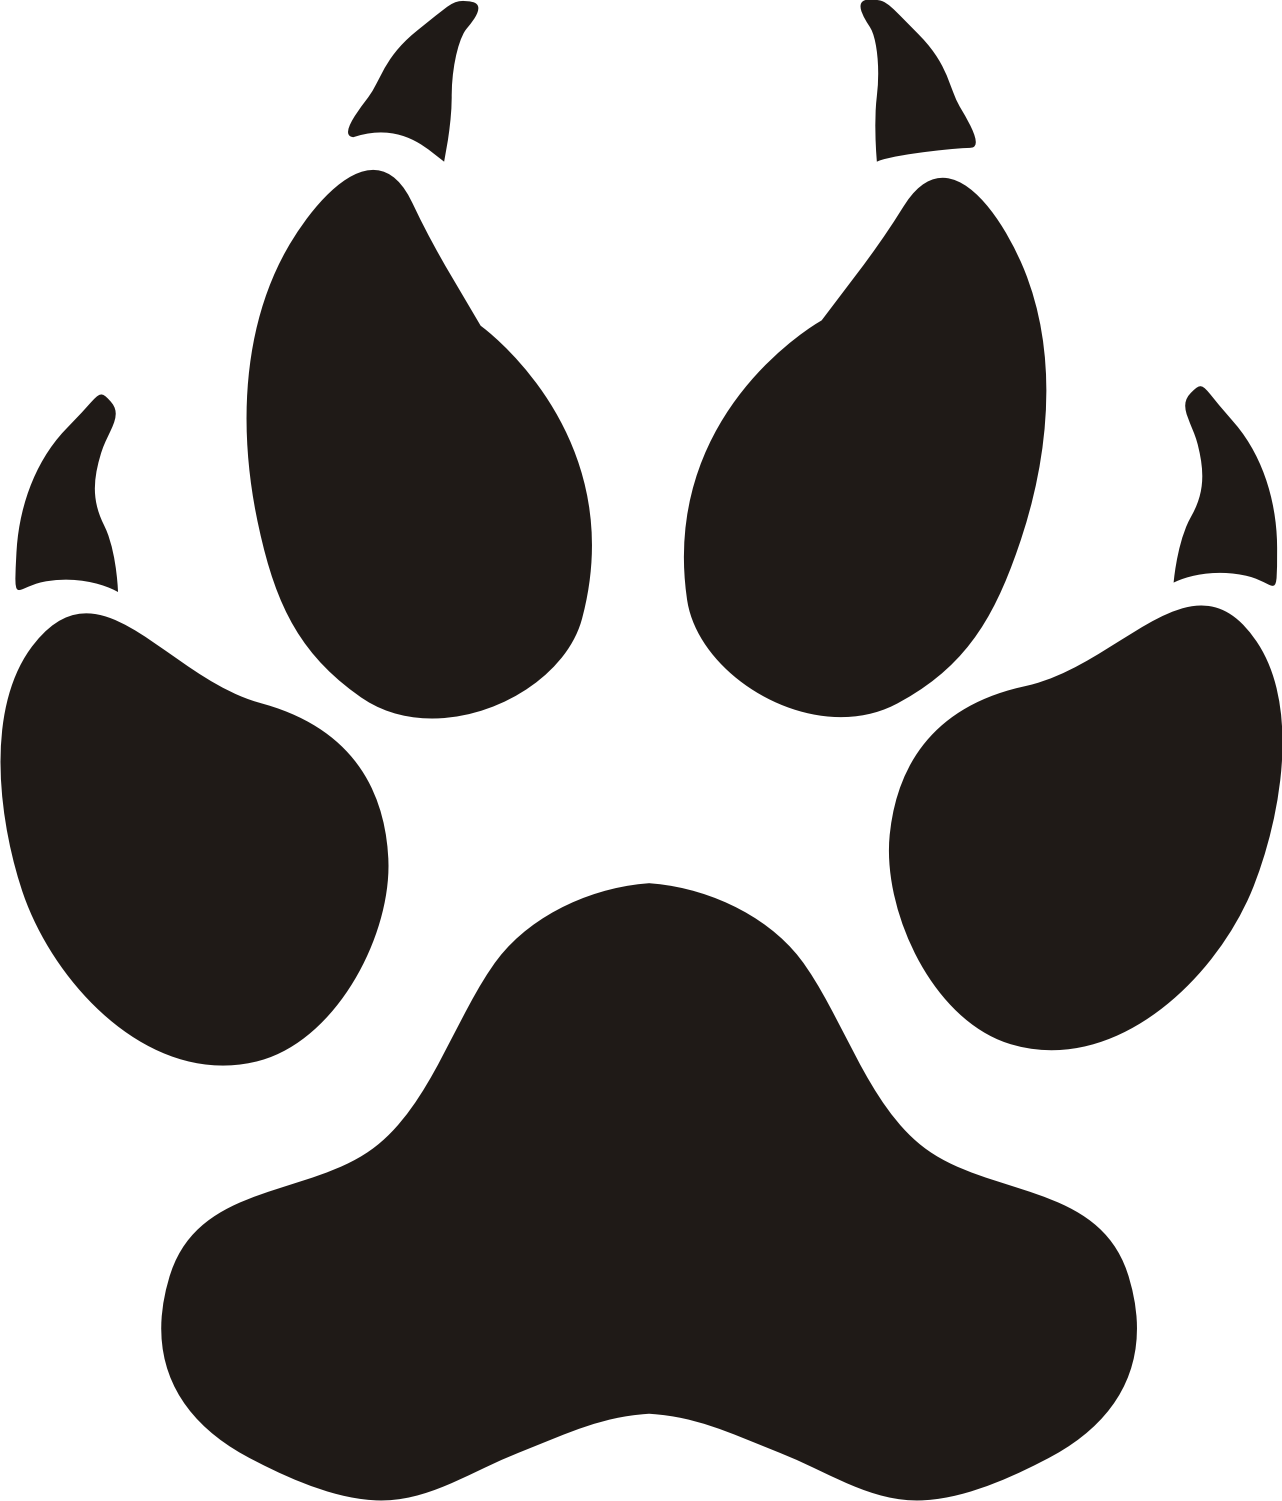 Tiger Paw Print Clipart; Tiger paw clipart - ClipartFox ...